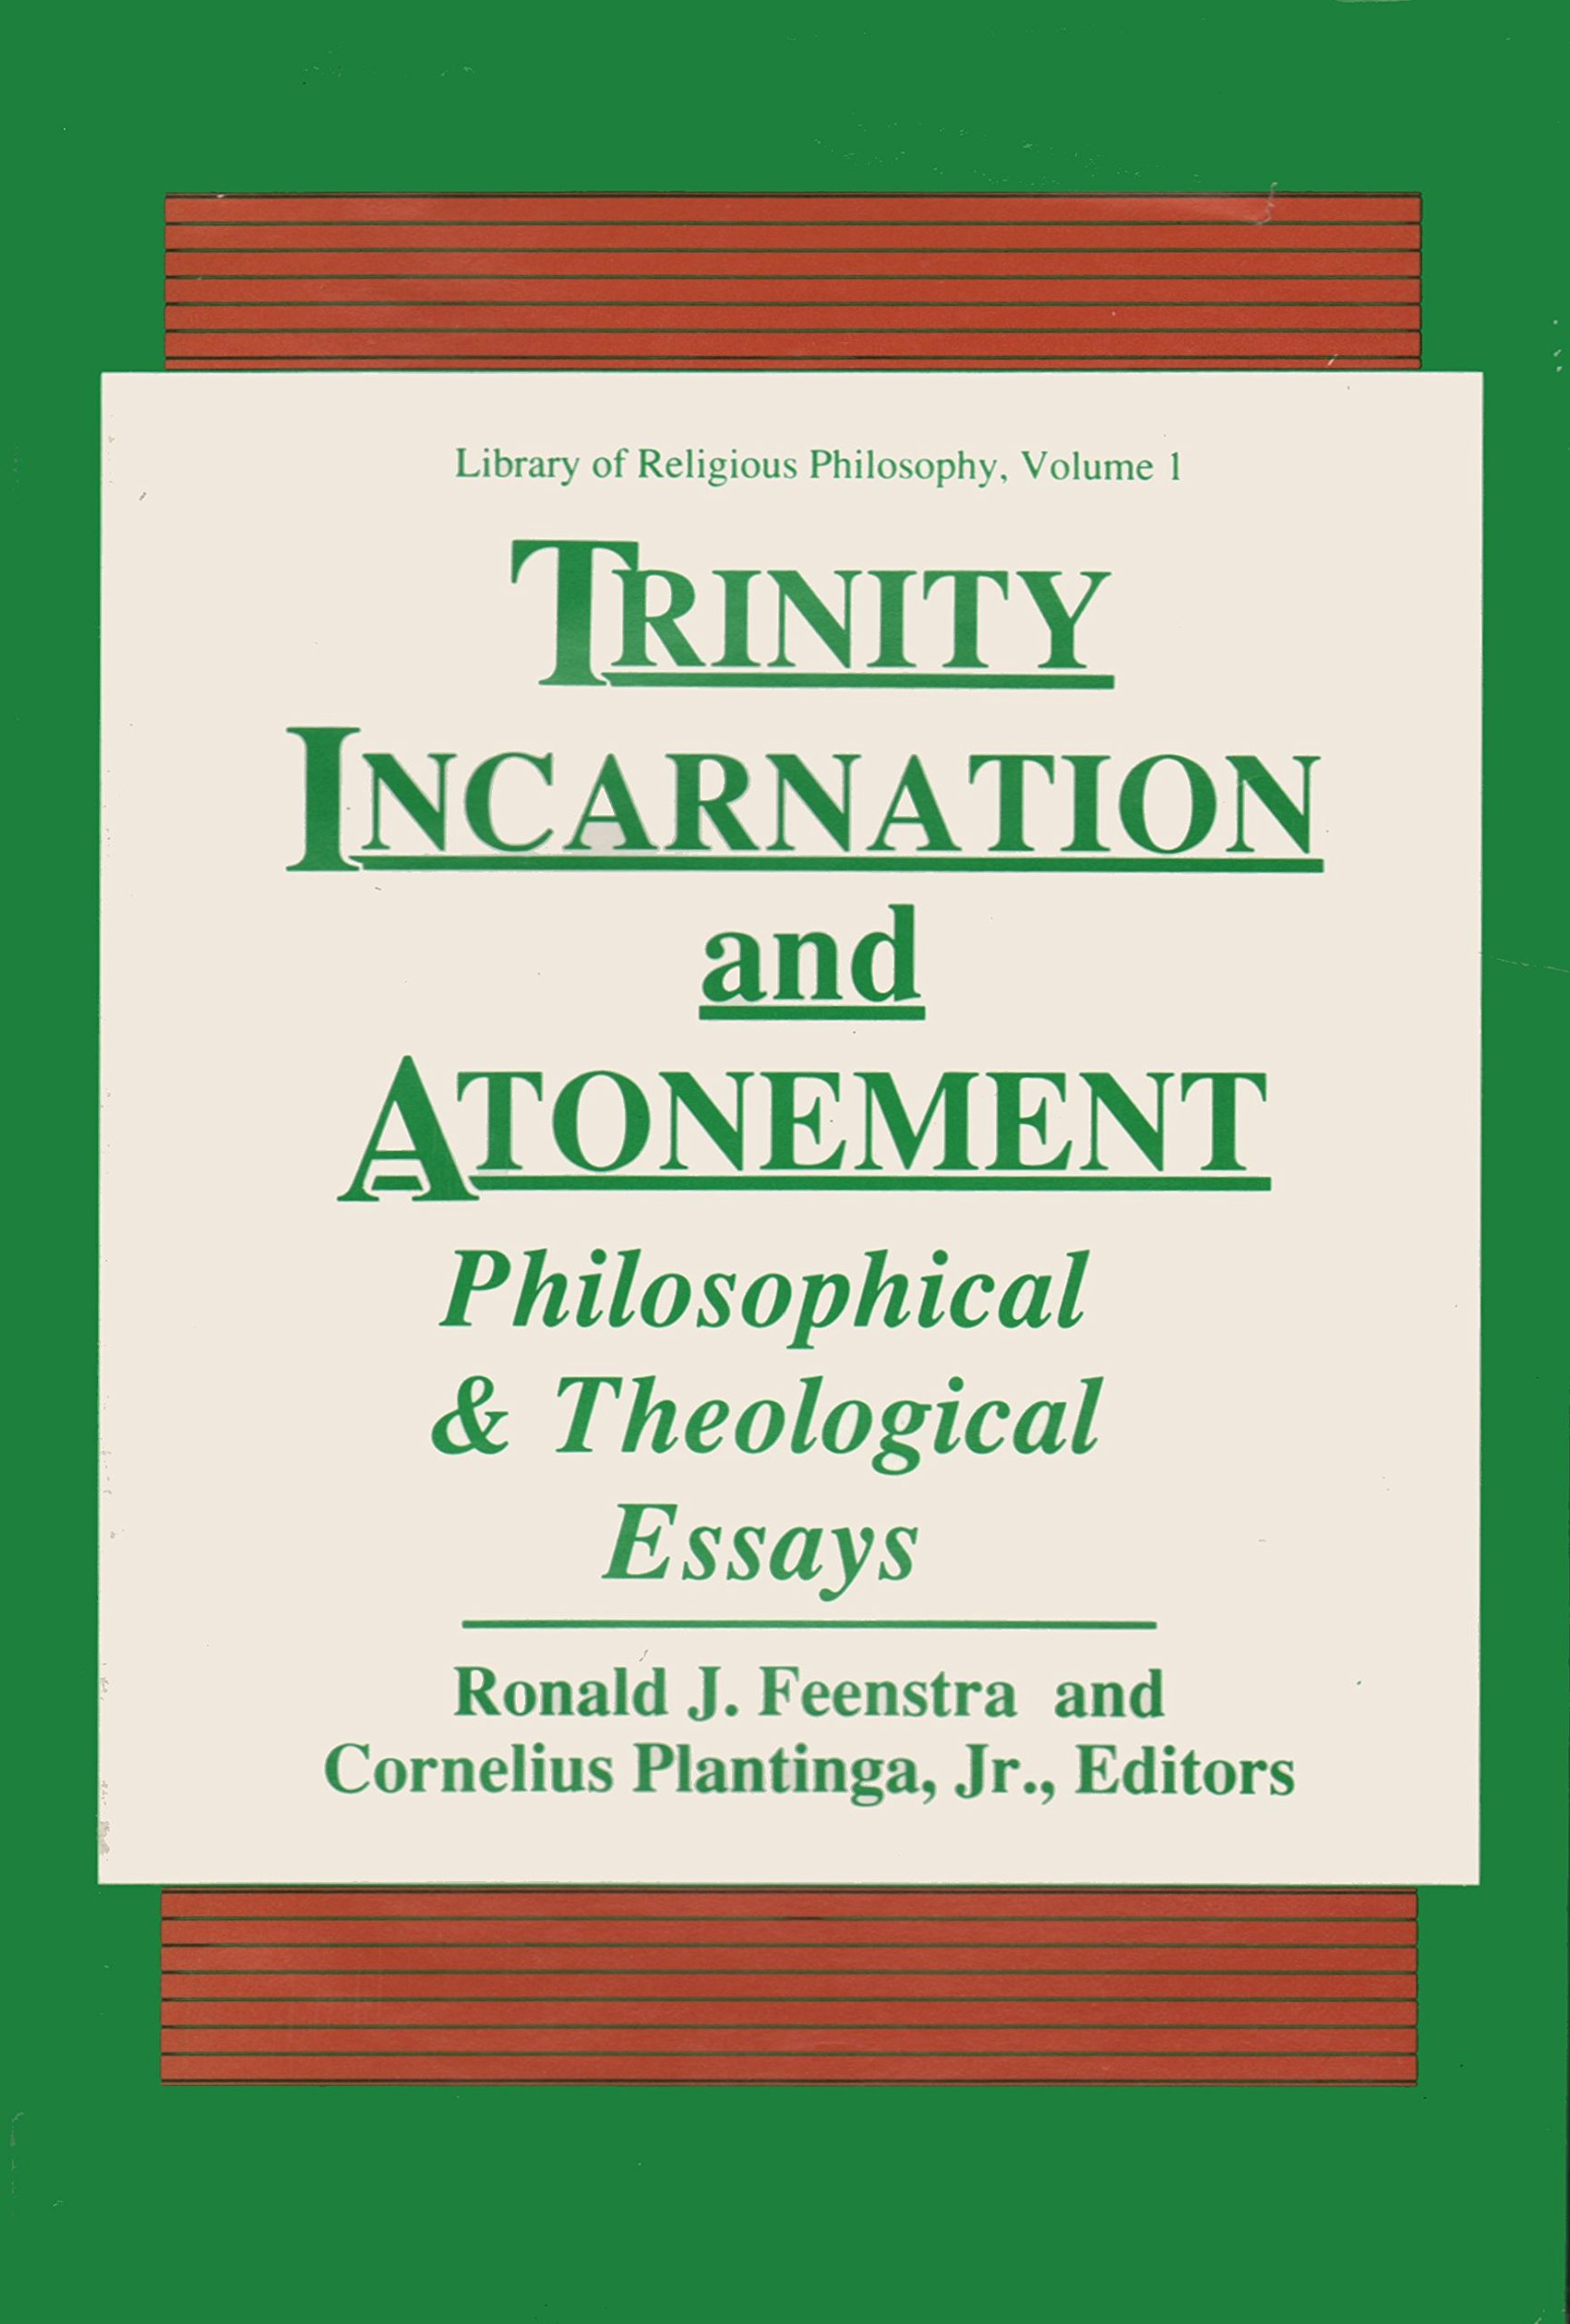 trinity incarnation and atonement philosophical and theological trinity incarnation and atonement philosophical and theological essays library of religious philosophy ronald j feenstra cornelius plantinga